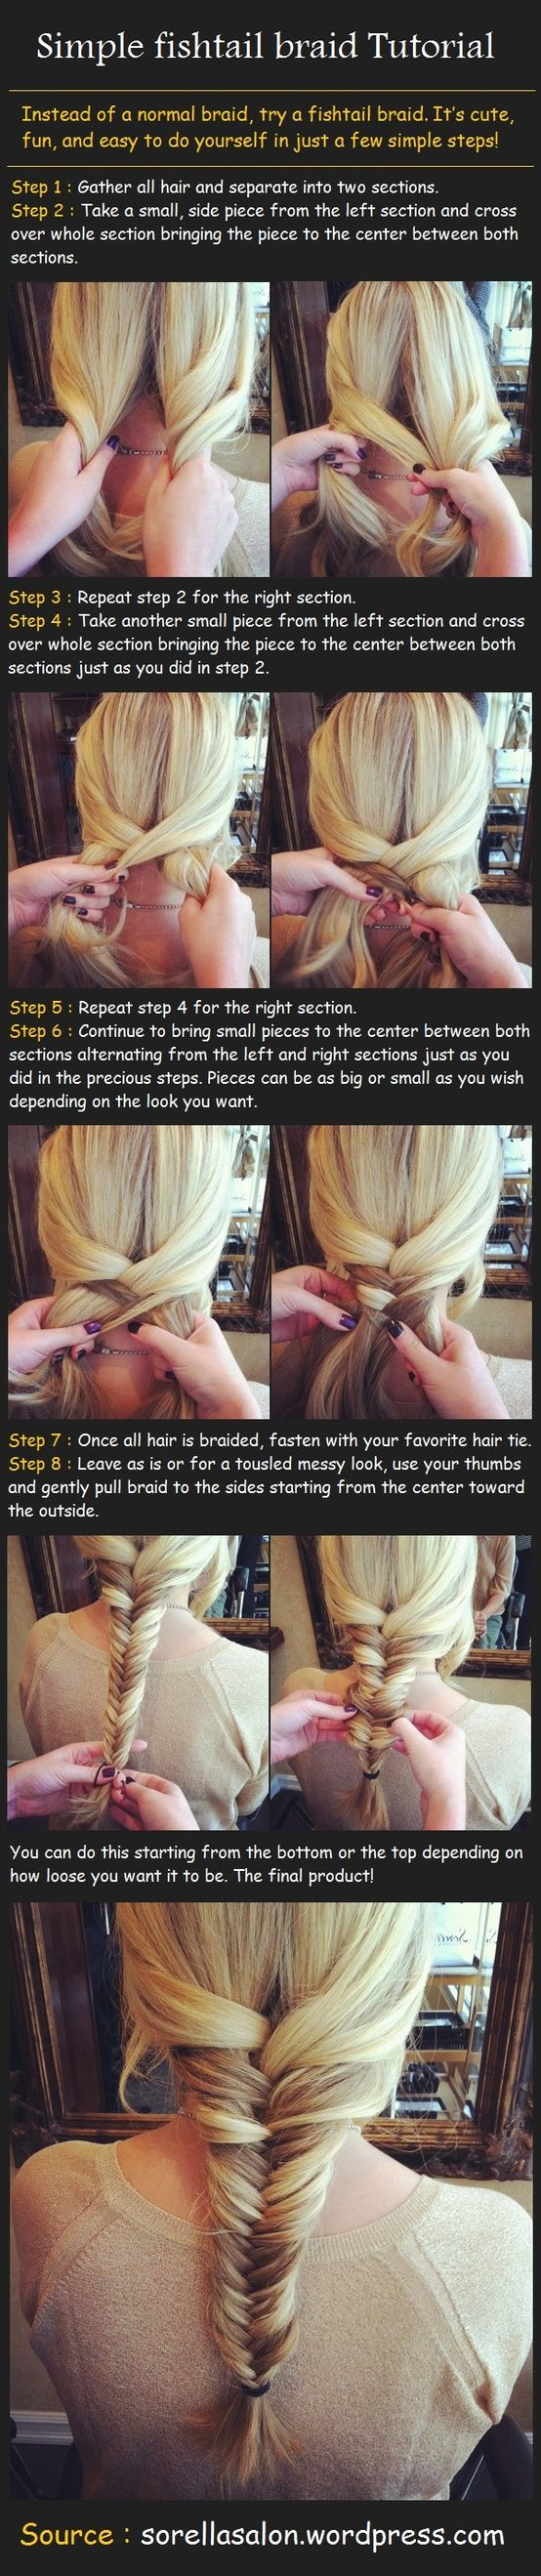 Simple fishtail braid tutorial- would be pretty for graduation or a special event.